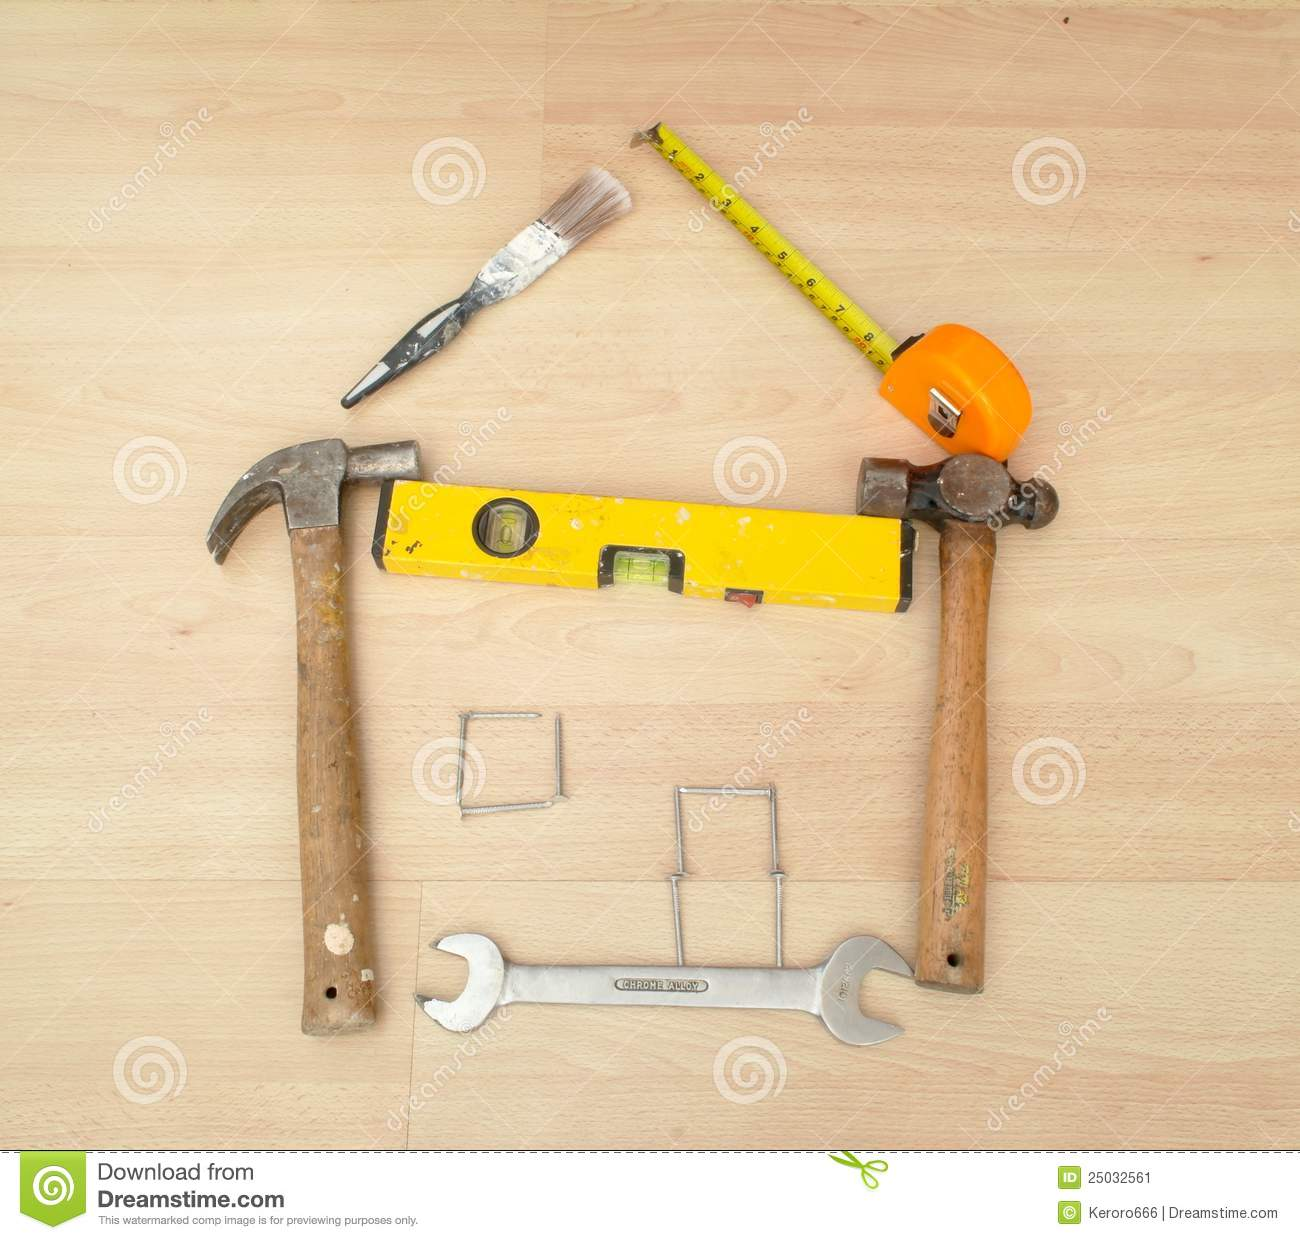 Outline of a house made from household tools stock image image 25032561 - Household tools ...